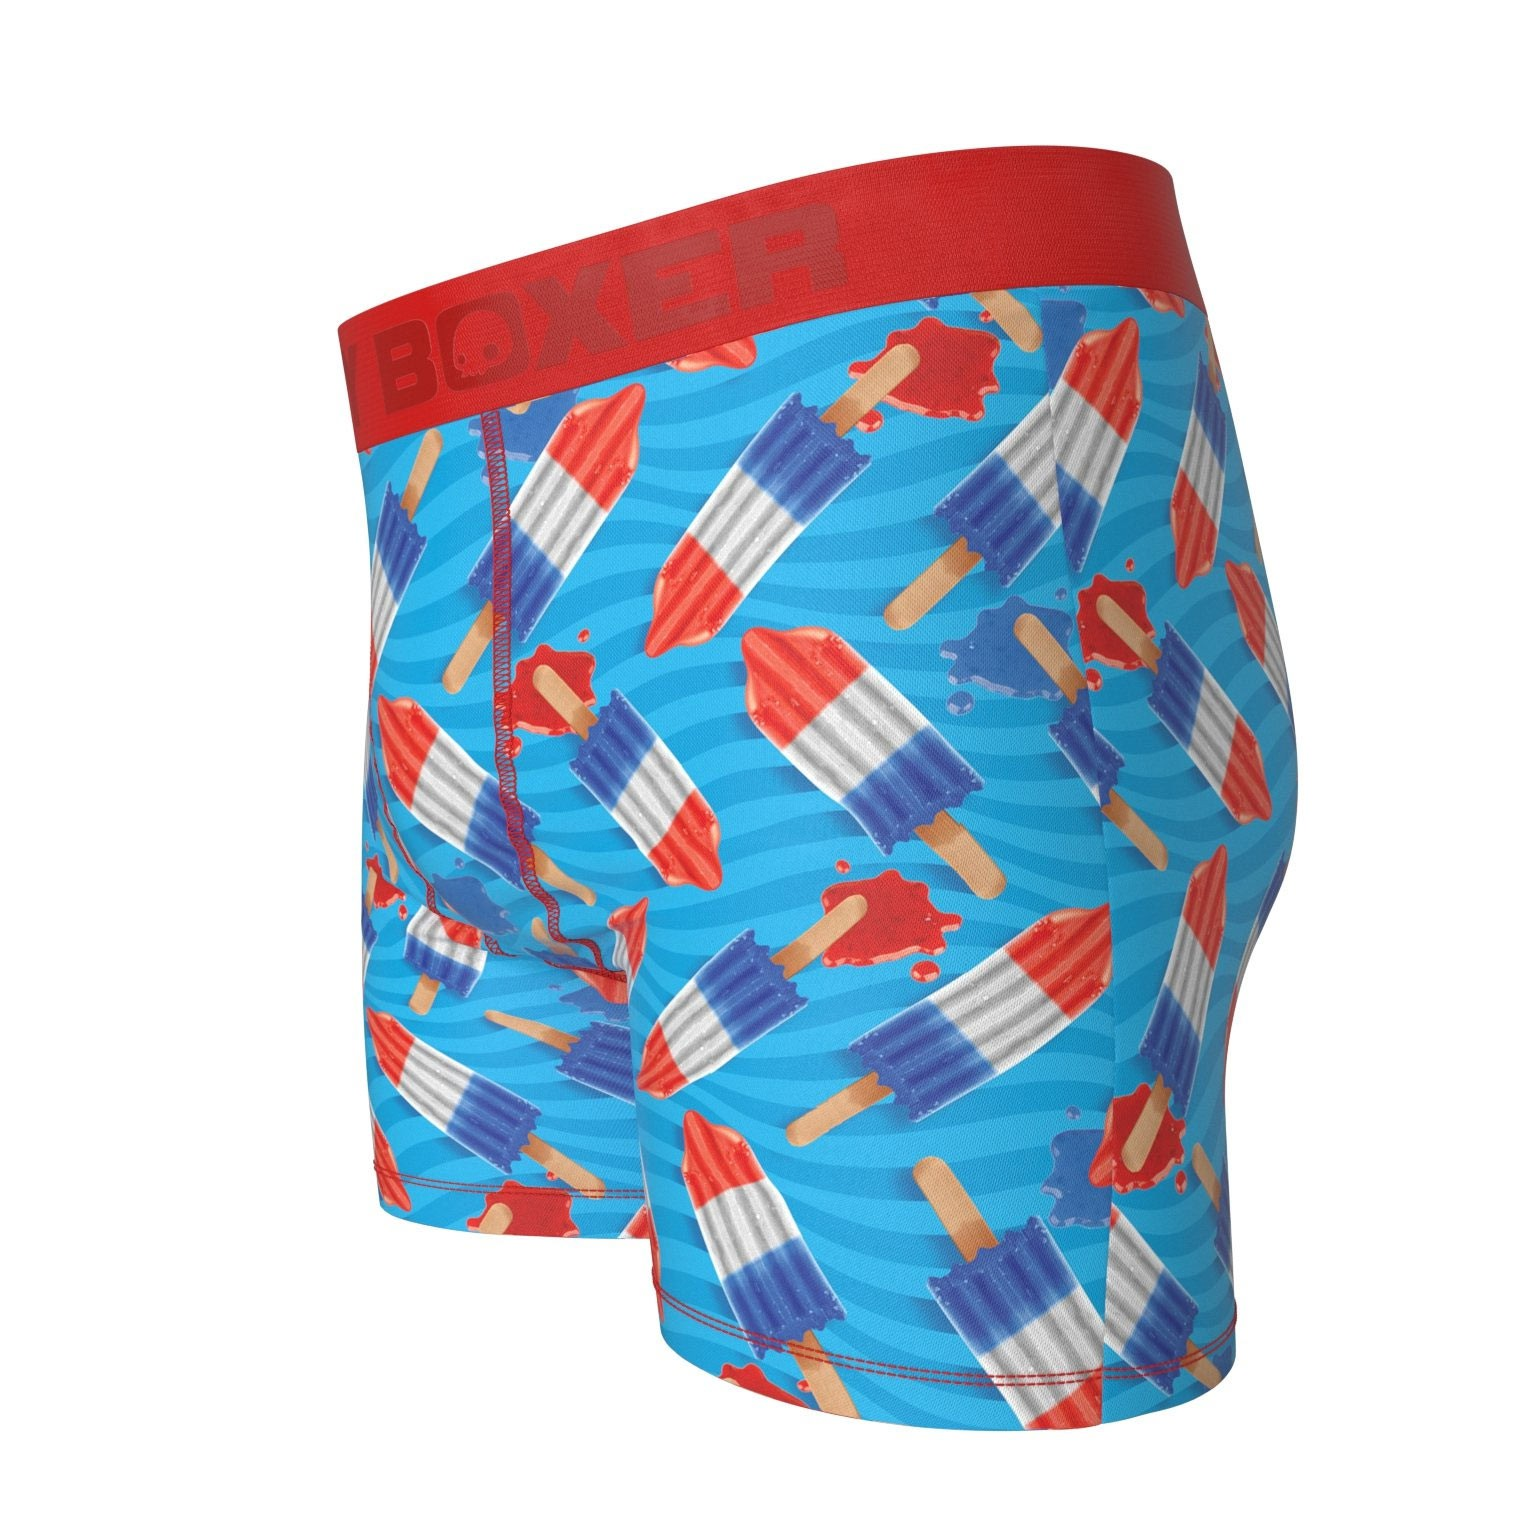 Bomb Pop Boxer Briefs